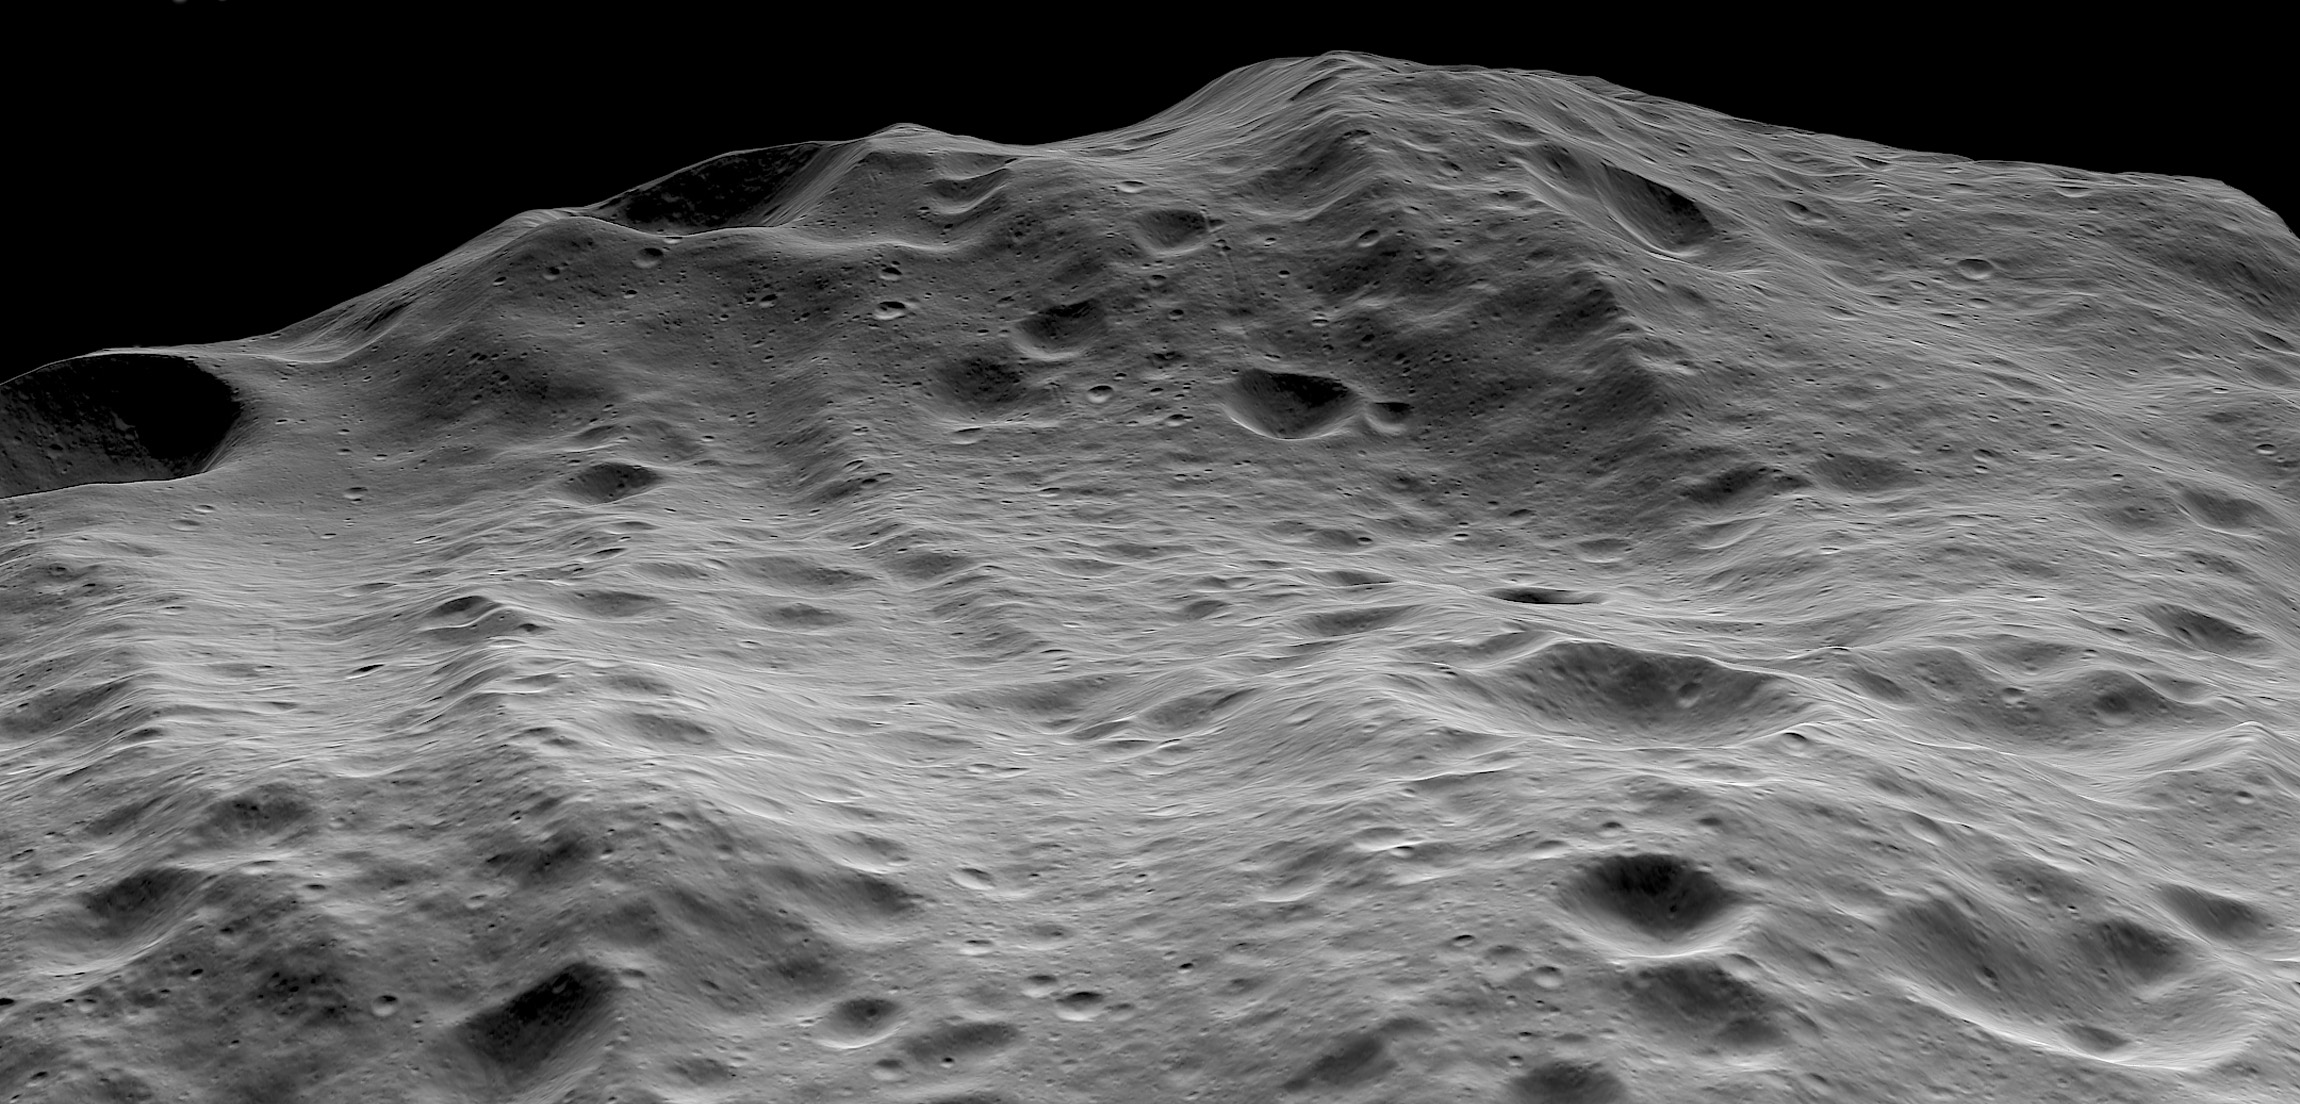 Background: Vesta Oblique